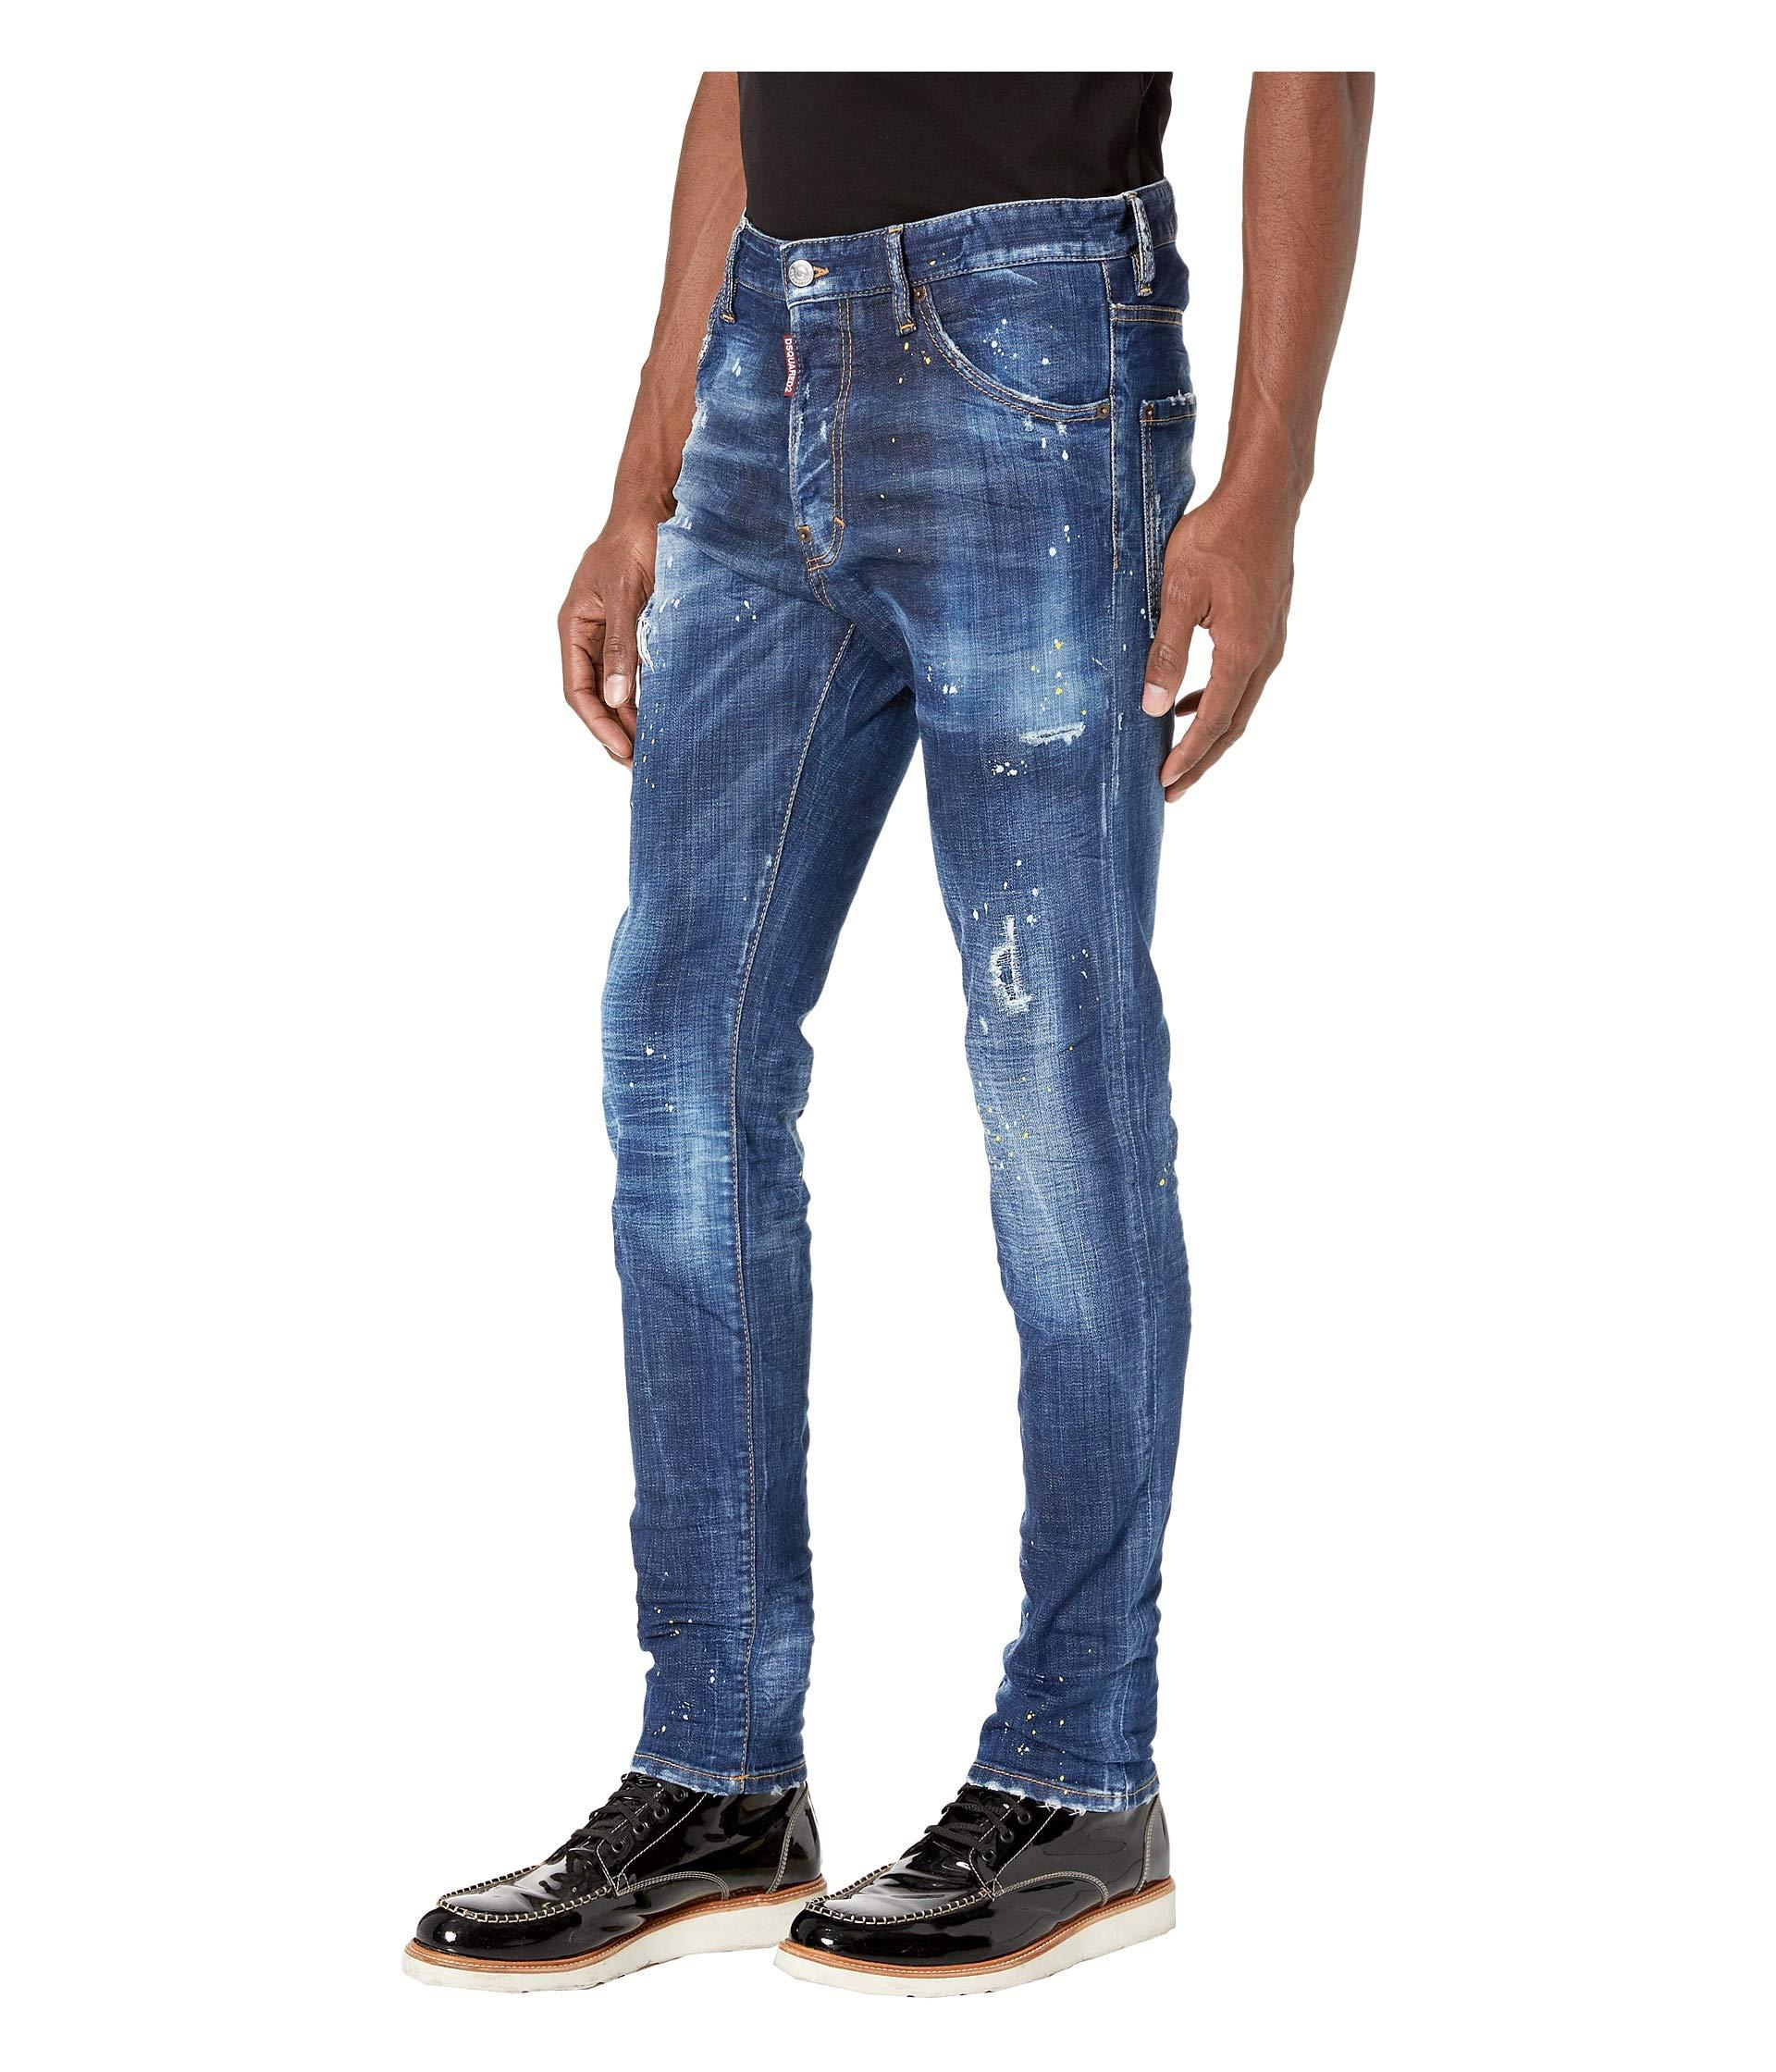 DSQUARED2 Mens Cool Guy Jeans in Yellow Ripped Spots Wash